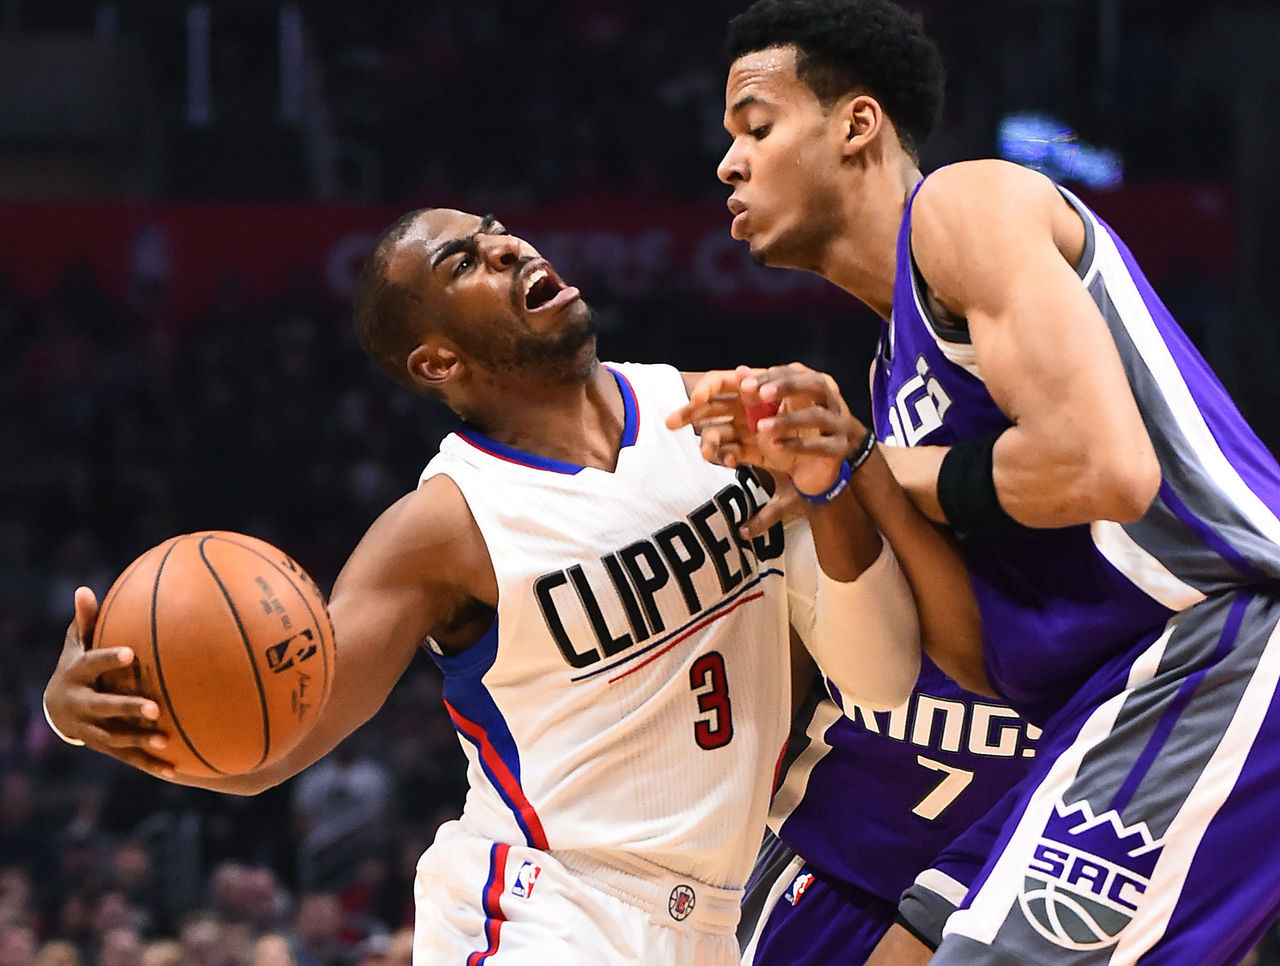 Cropped 2017 03 26t205137z 439361131 nocid rtrmadp 3 nba sacramento kings at los angeles clippers